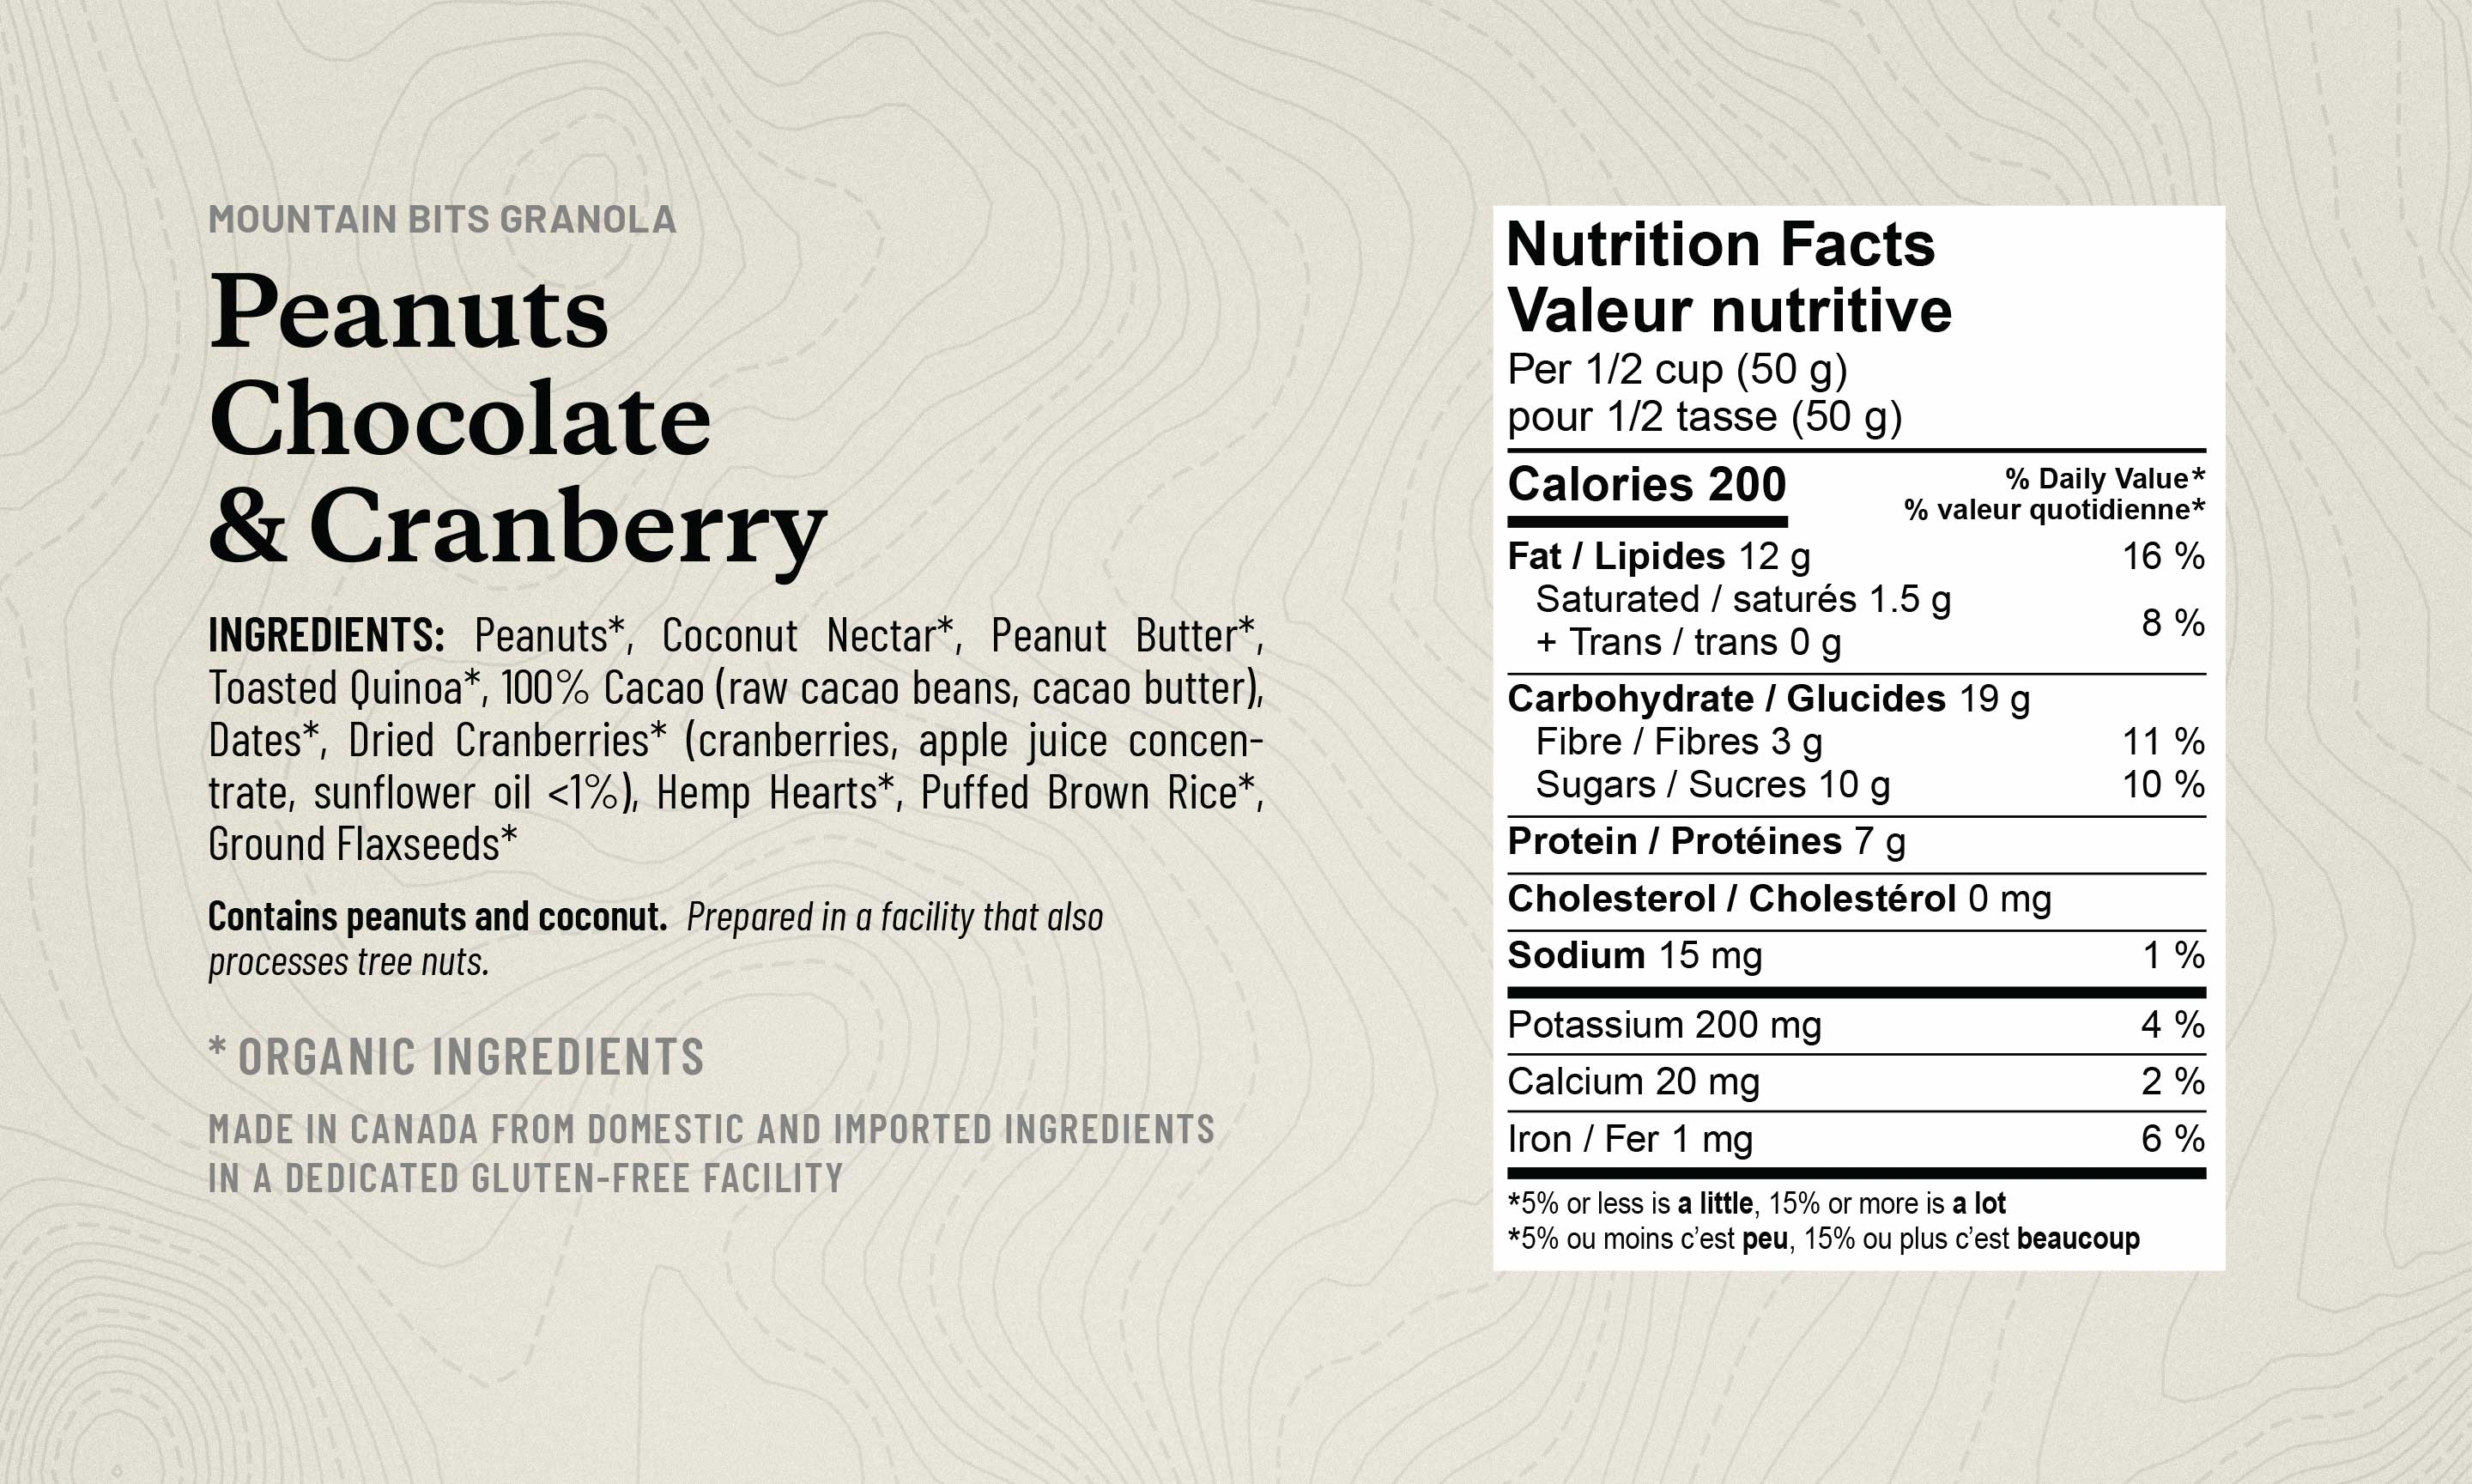 Peanut Mountain Bits granola ingredient list and nutrition facts table